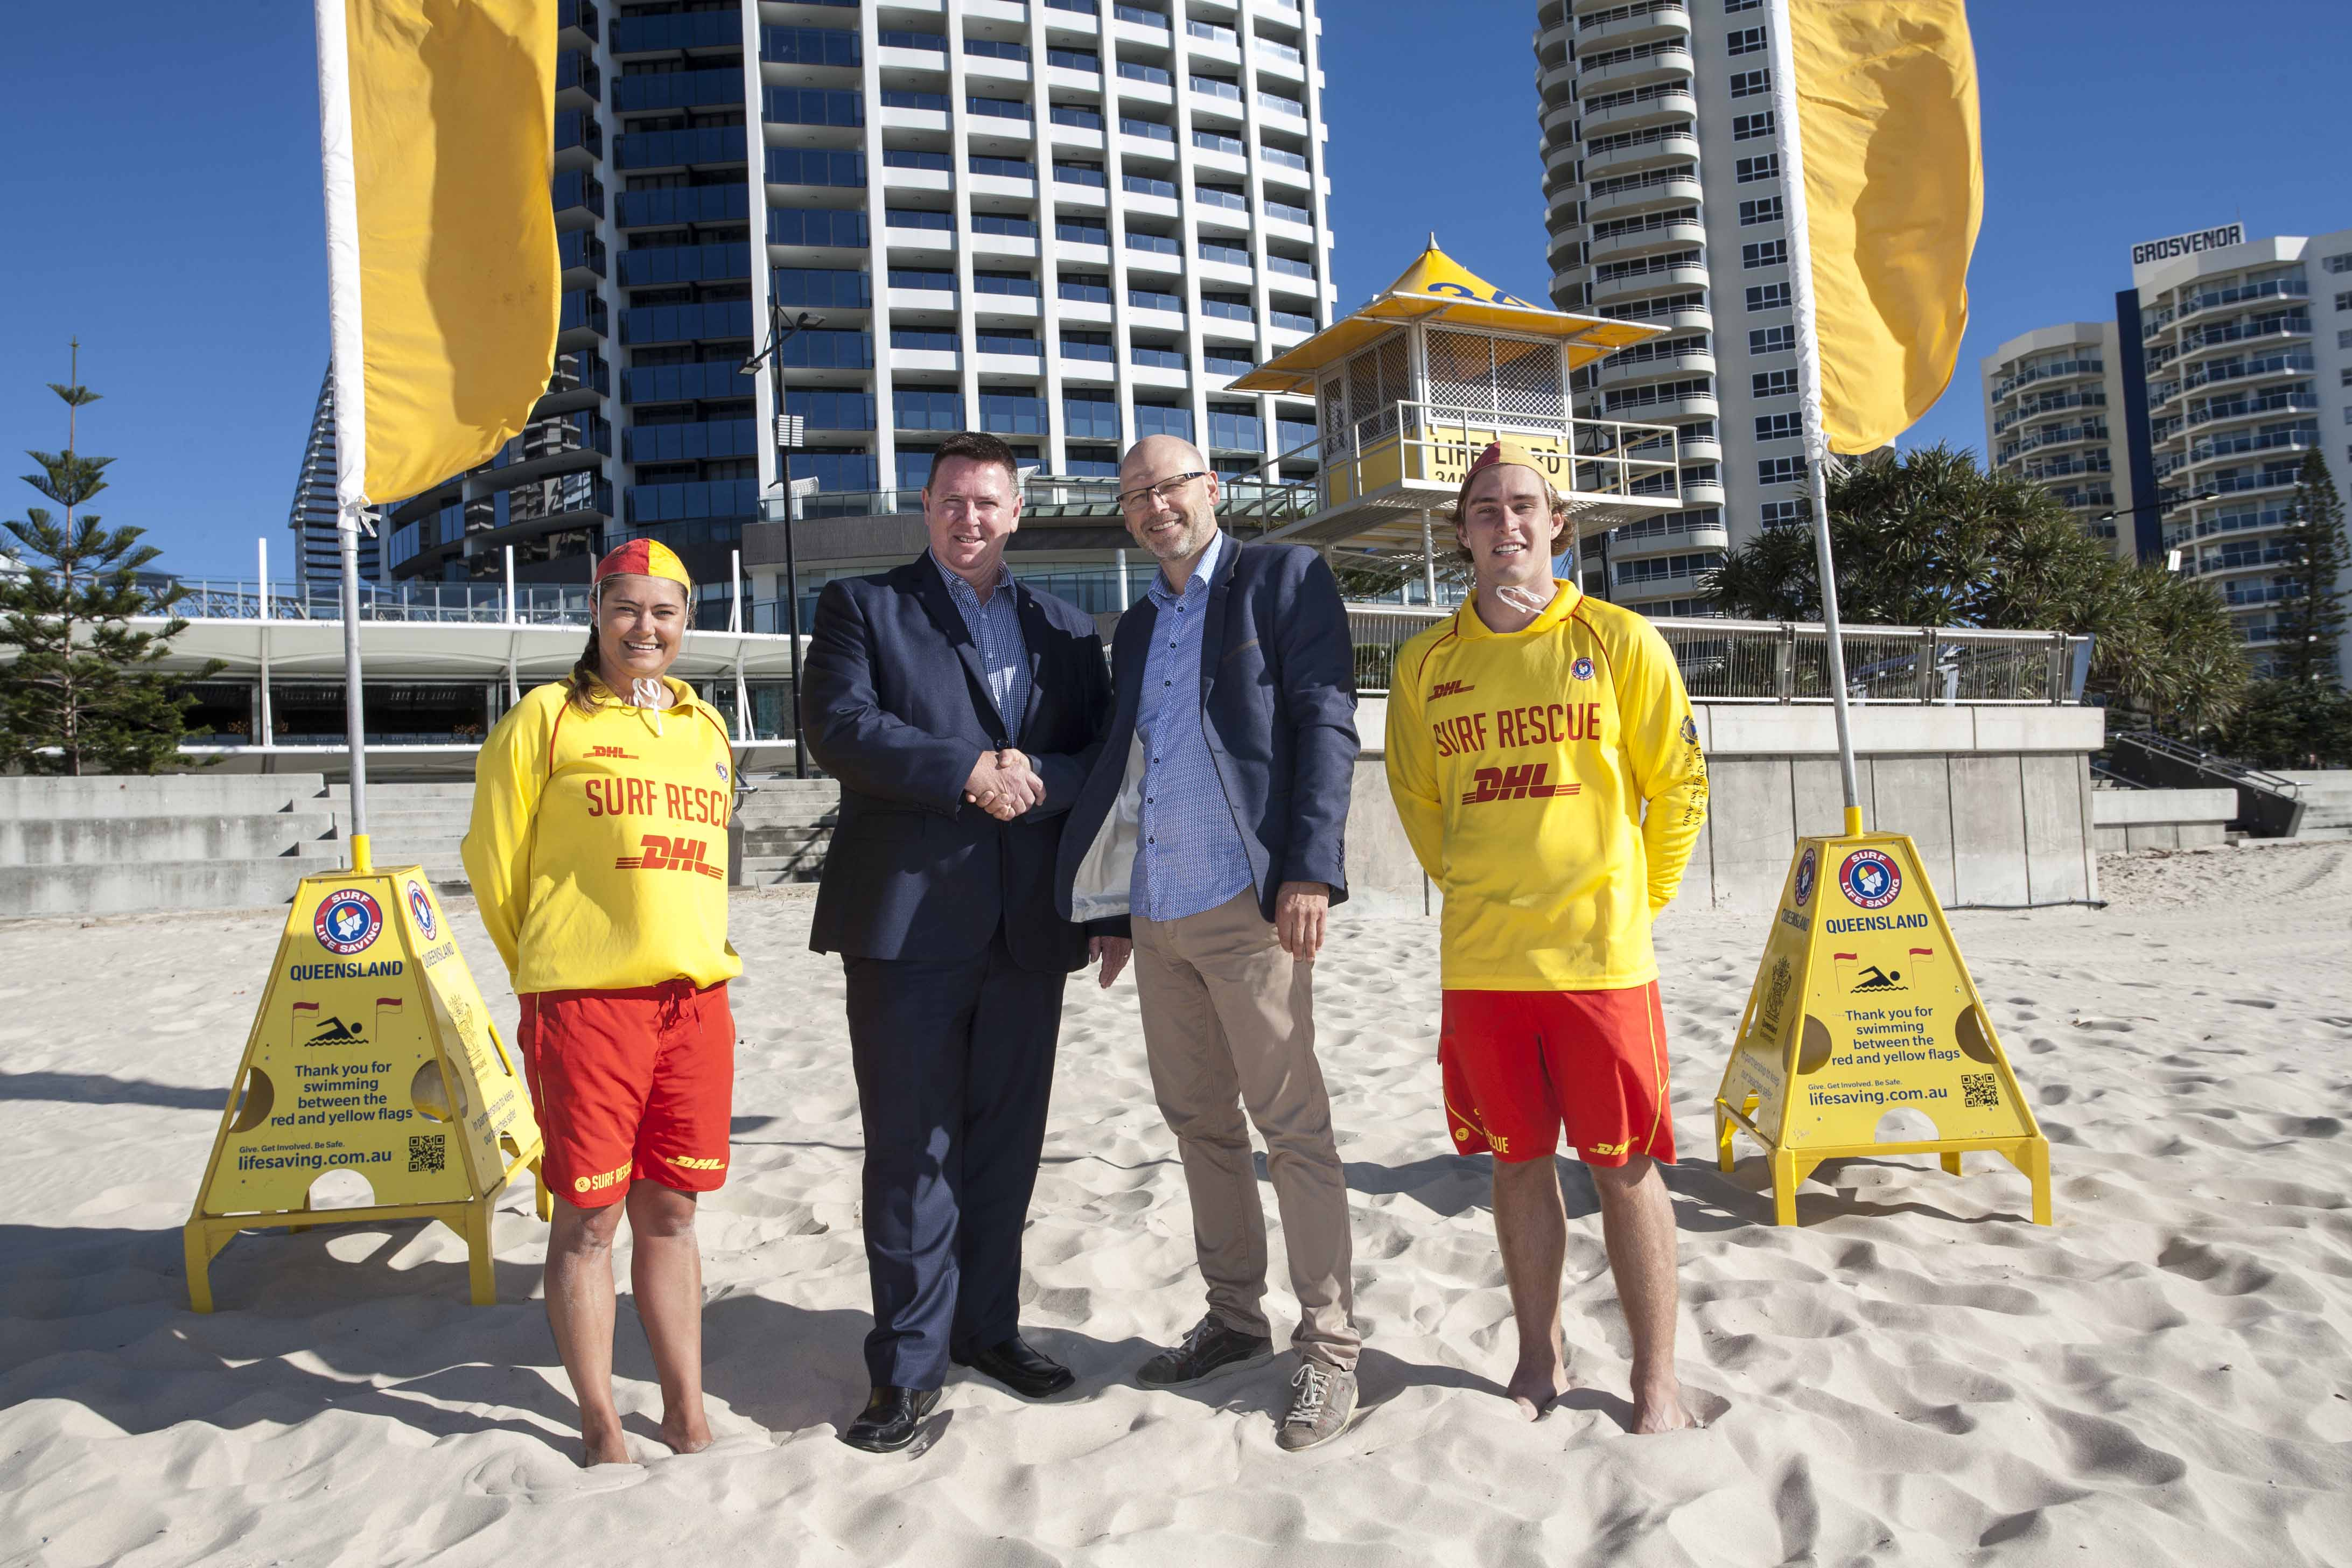 Pictured - John Brennan and Tomas Johnsson with two SLSQ lifeguards